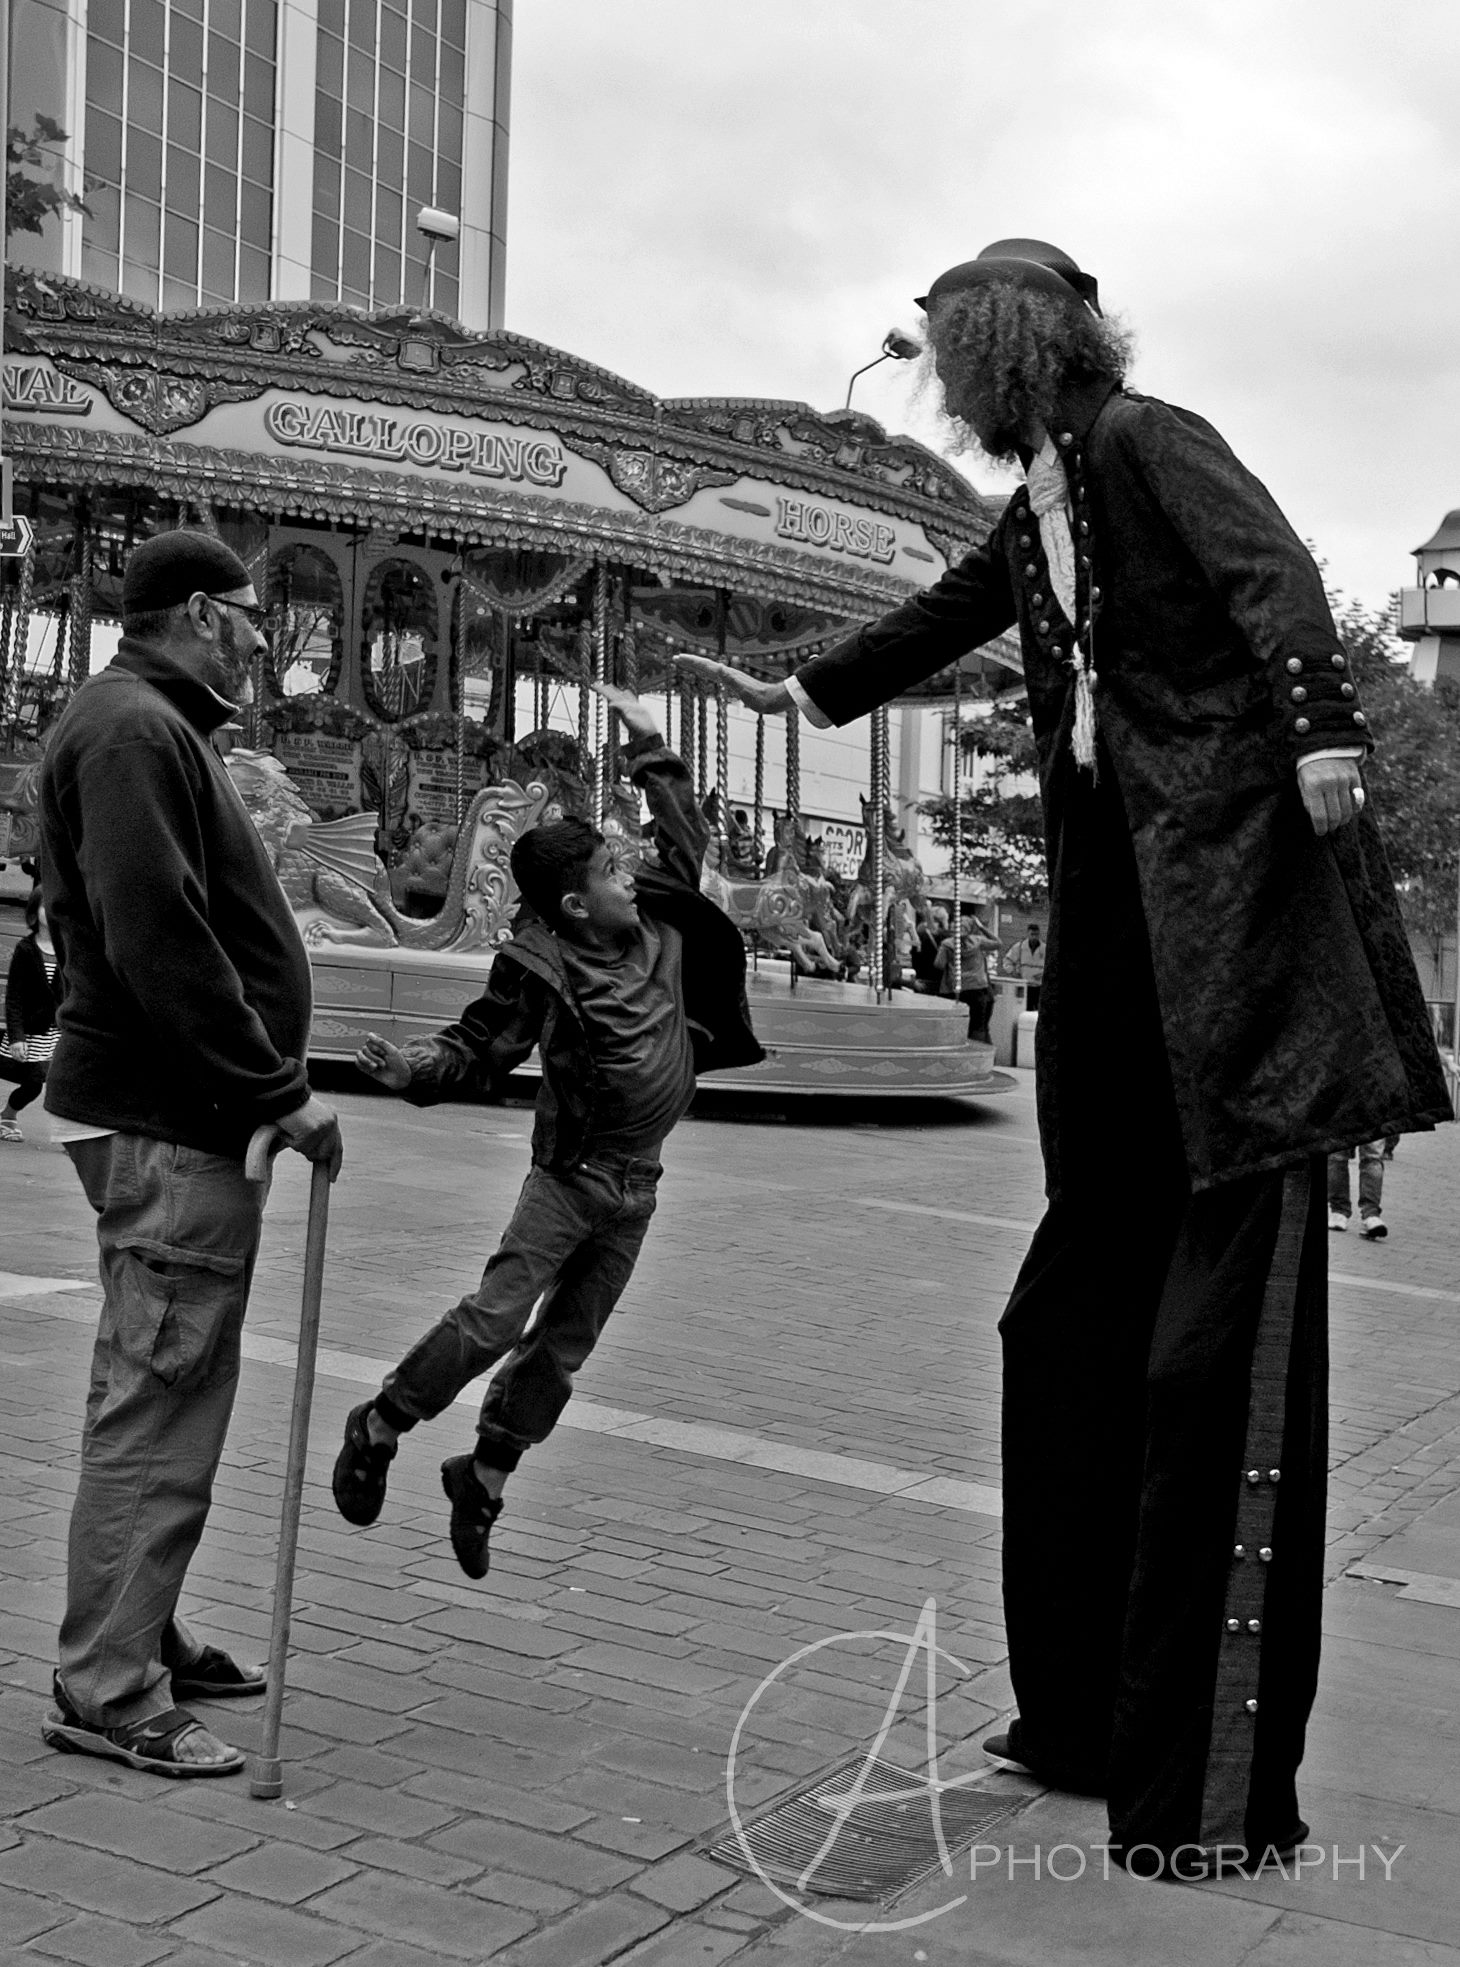 Walkabout Circus Performers and Street Theatre: Stilt walker high five